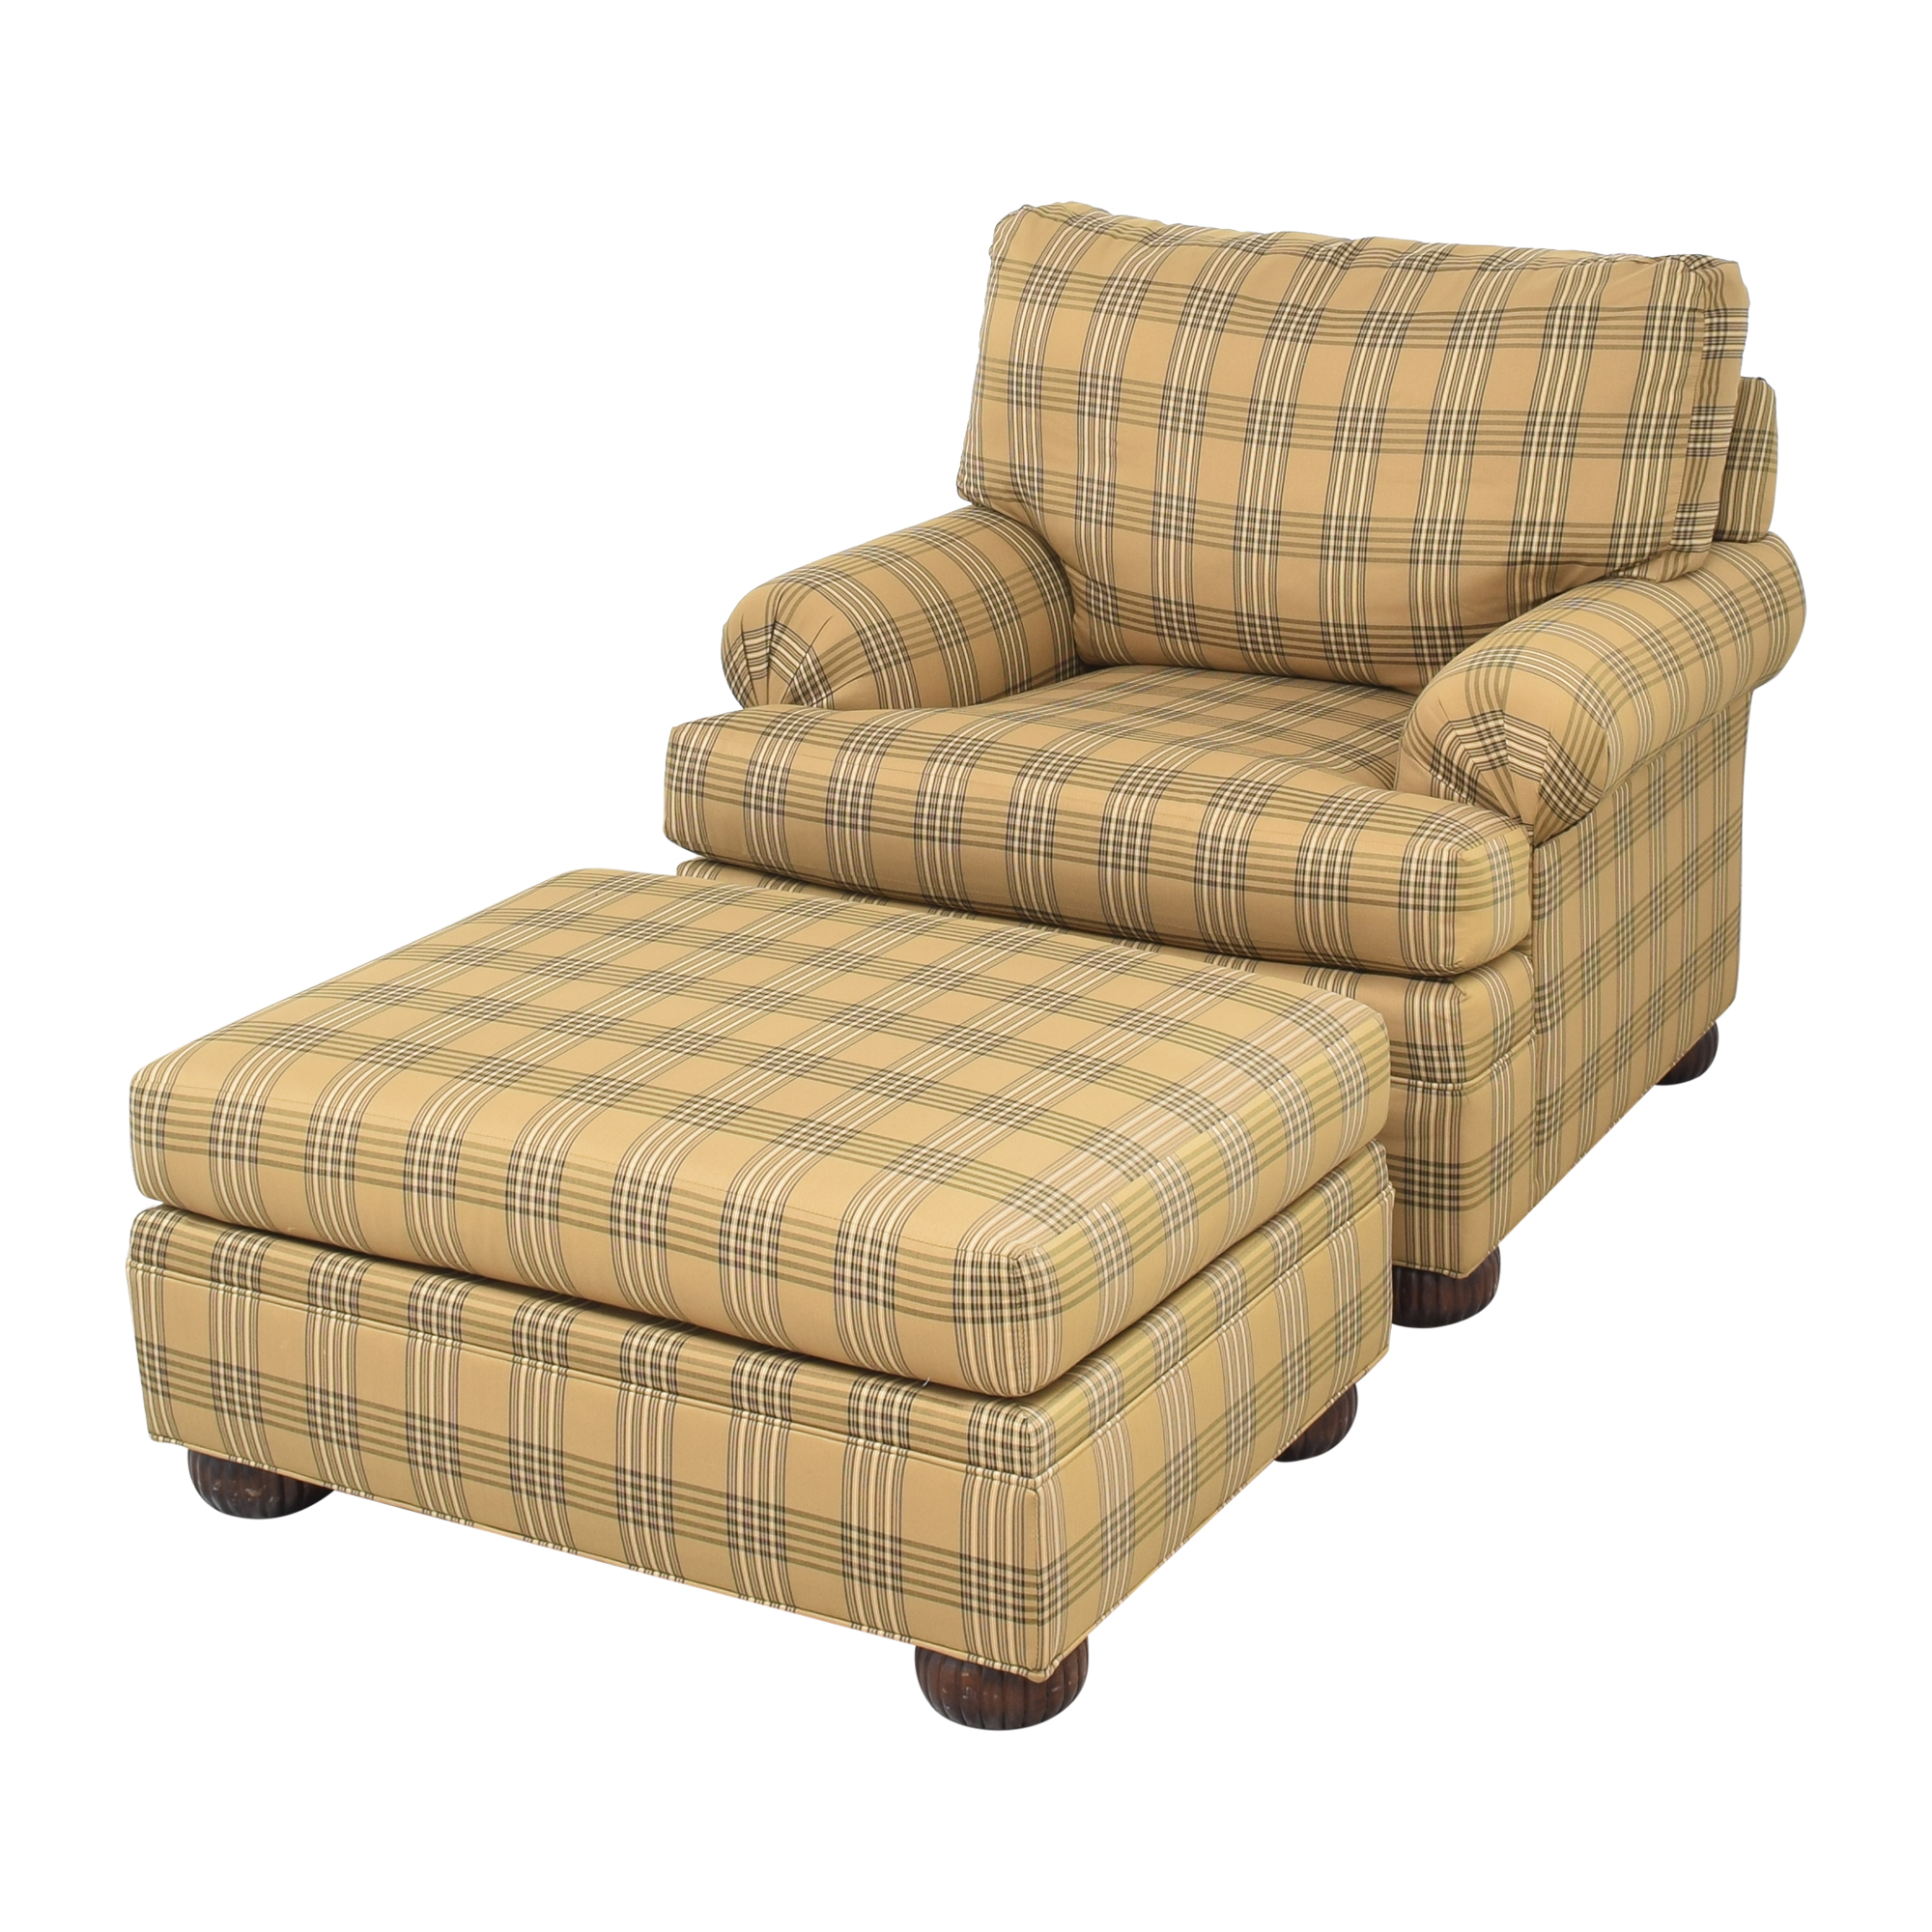 Ethan Allen Ethan Allen Club Chair and Ottoman used